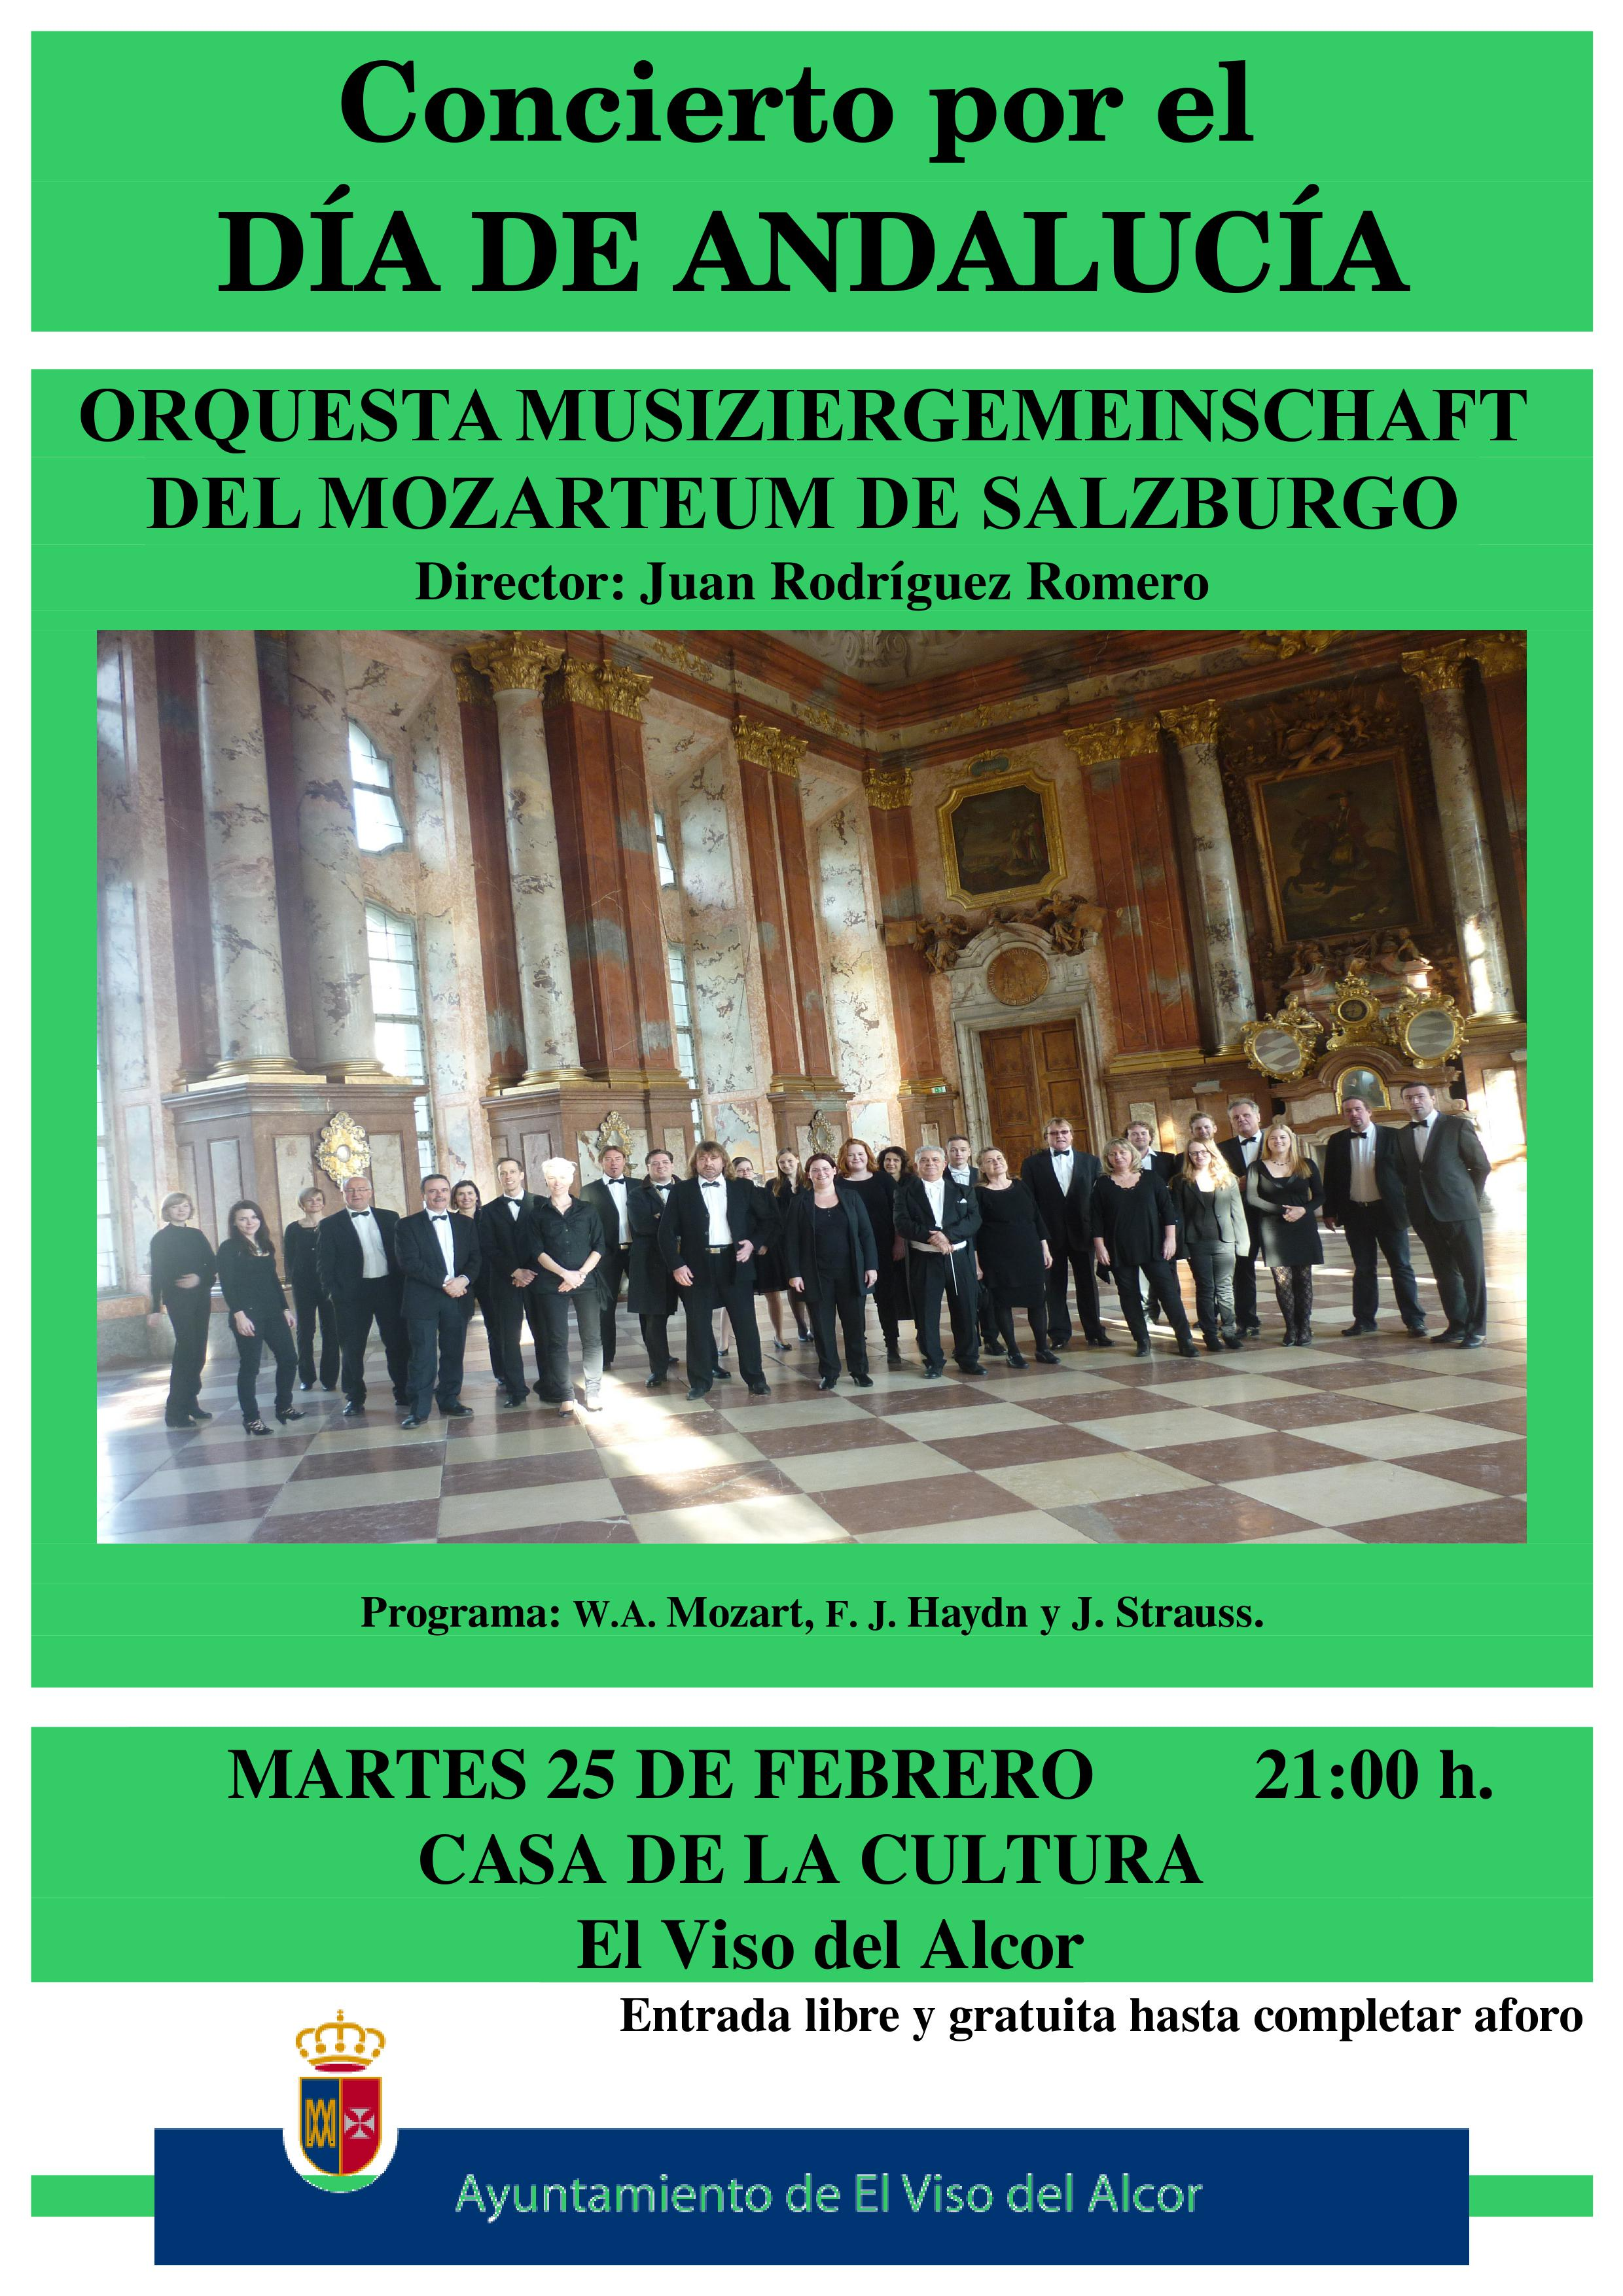 cartelconciertosalzburgo